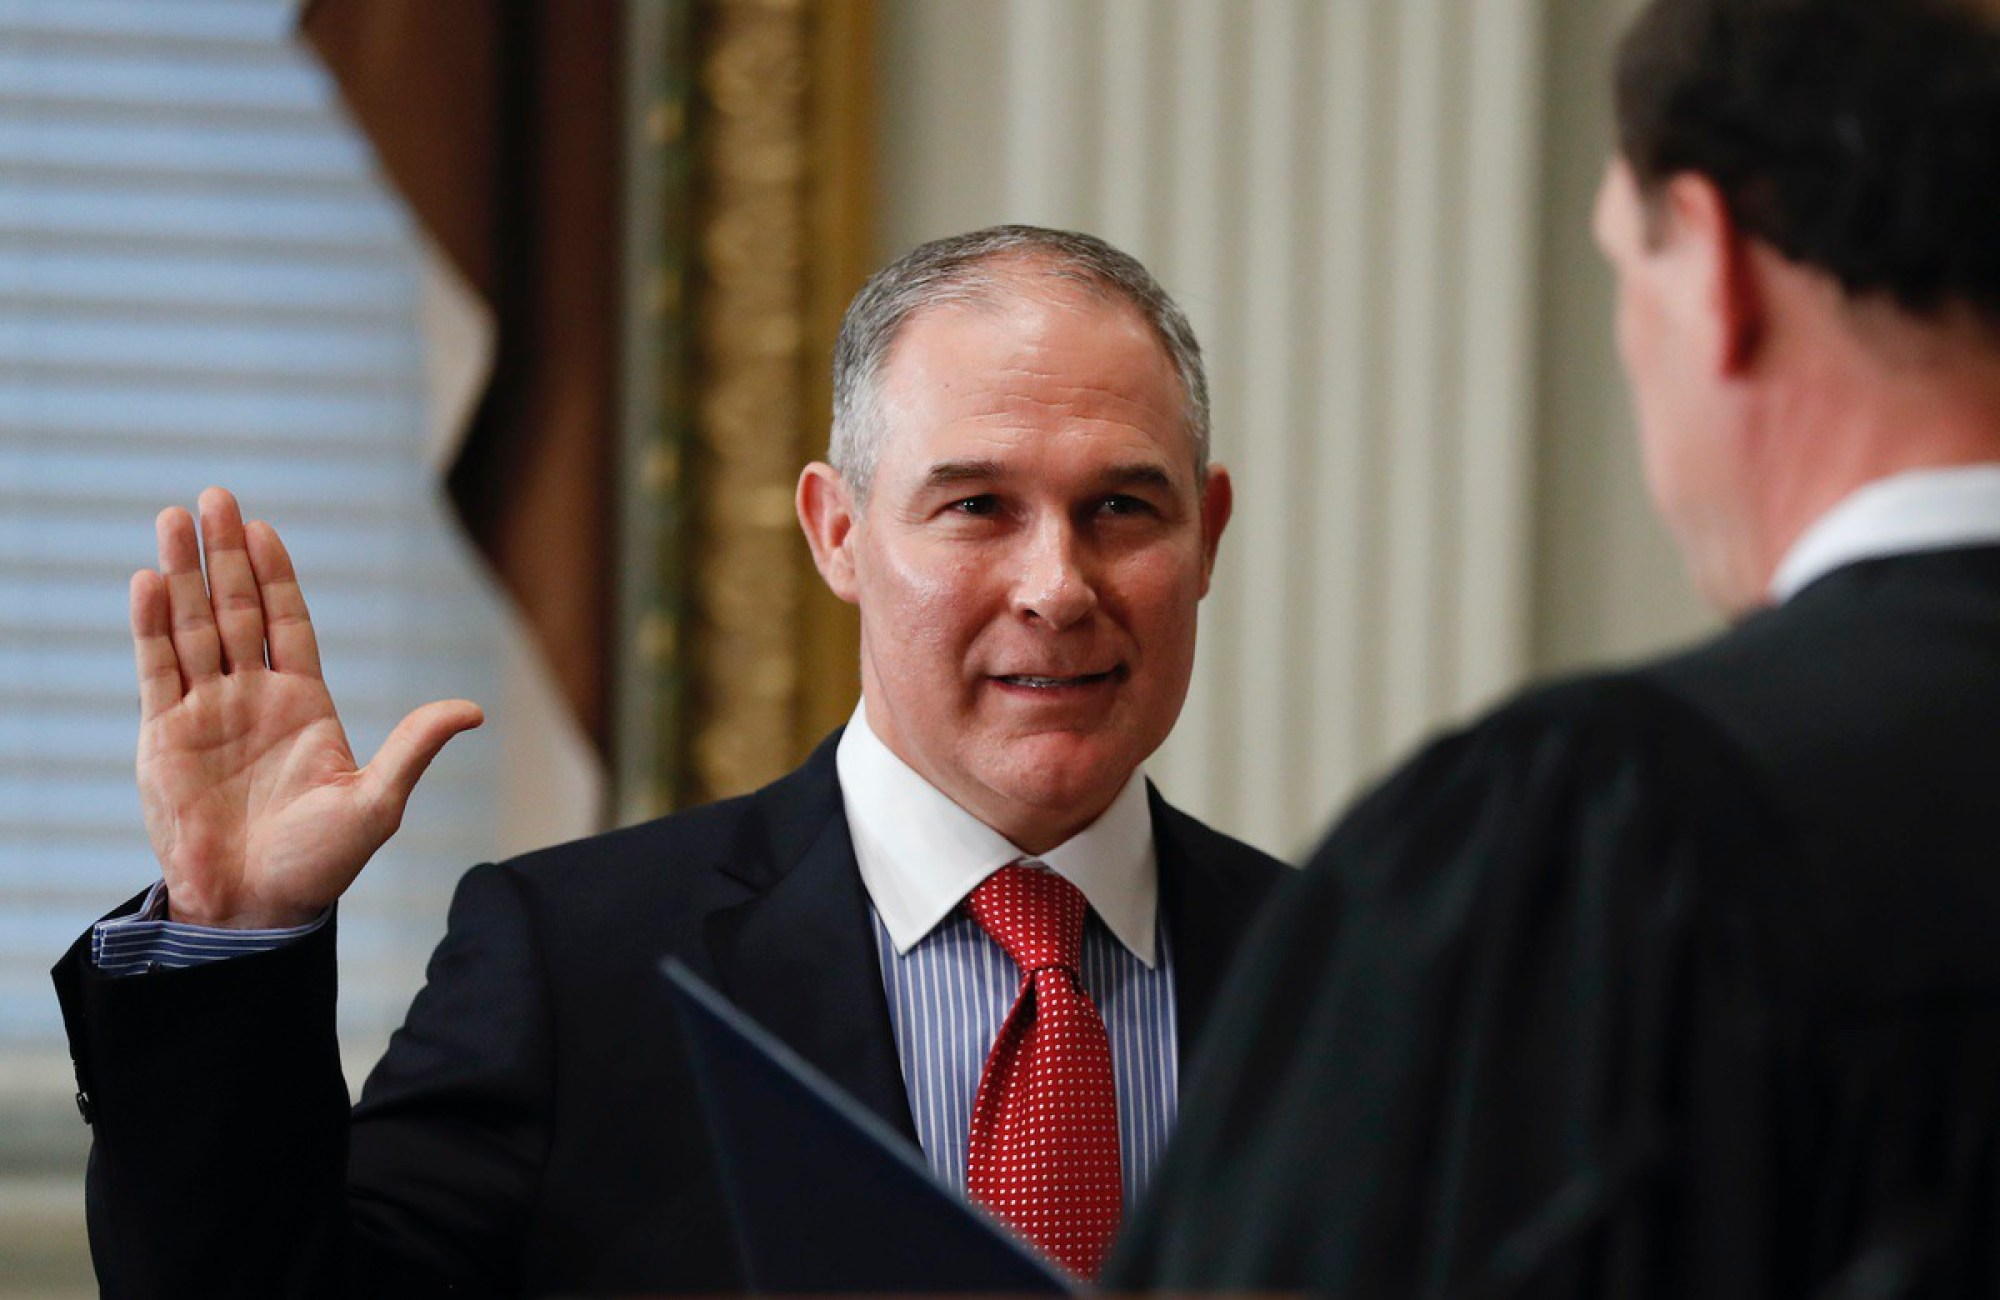 Supreme Court associate justice Samuel Alito, right, swears in Scott Pruitt as the Environmental Protection Agency Administrator in the Eisenhower Executive Office Building in the White House complex in Washington, Friday, Feb. 17, 2017. (AP Photo/Carolyn Kaster)